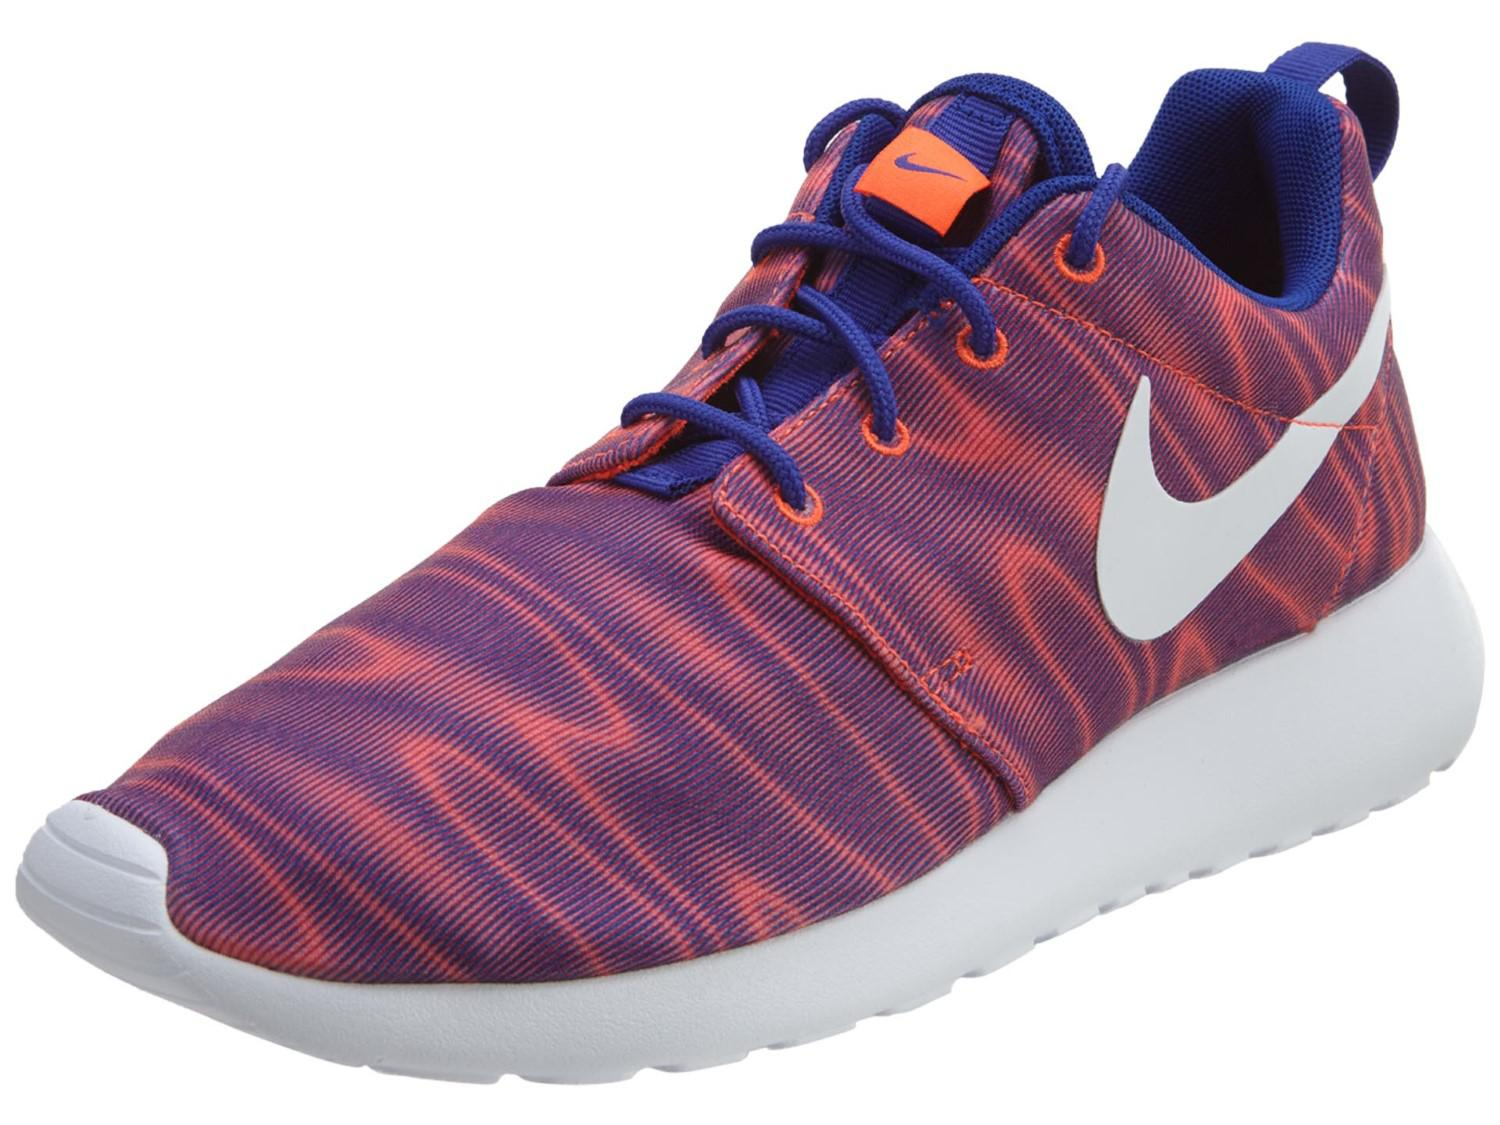 Lyst Nike Roshe One Print Casual Shoes in Purple